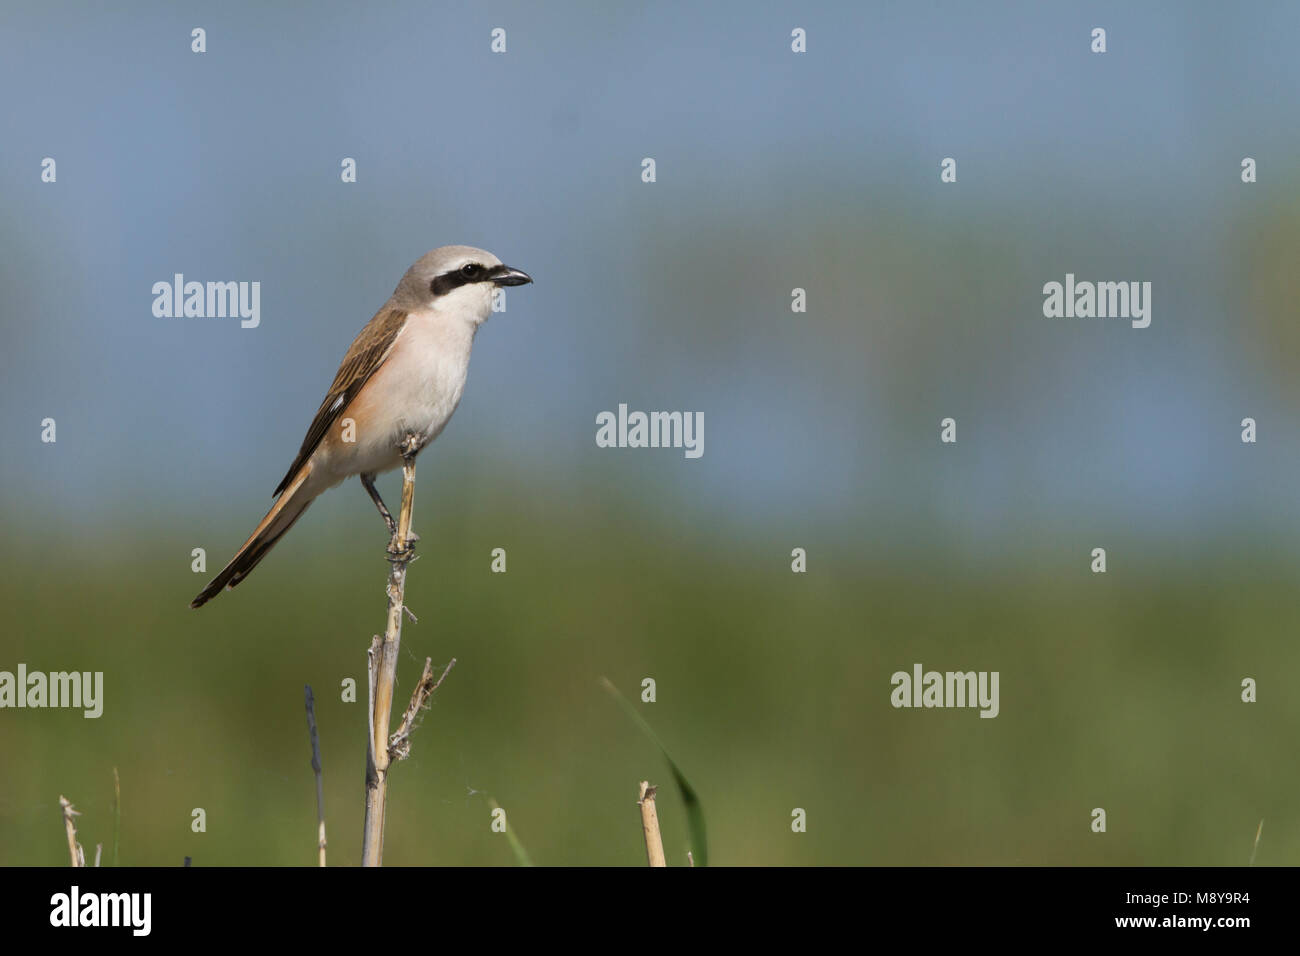 Hybrid Red-backed Shrike x Turkestan Shrike, Lanius collurio collurio x Lanius phoenicuroides - Stock Image